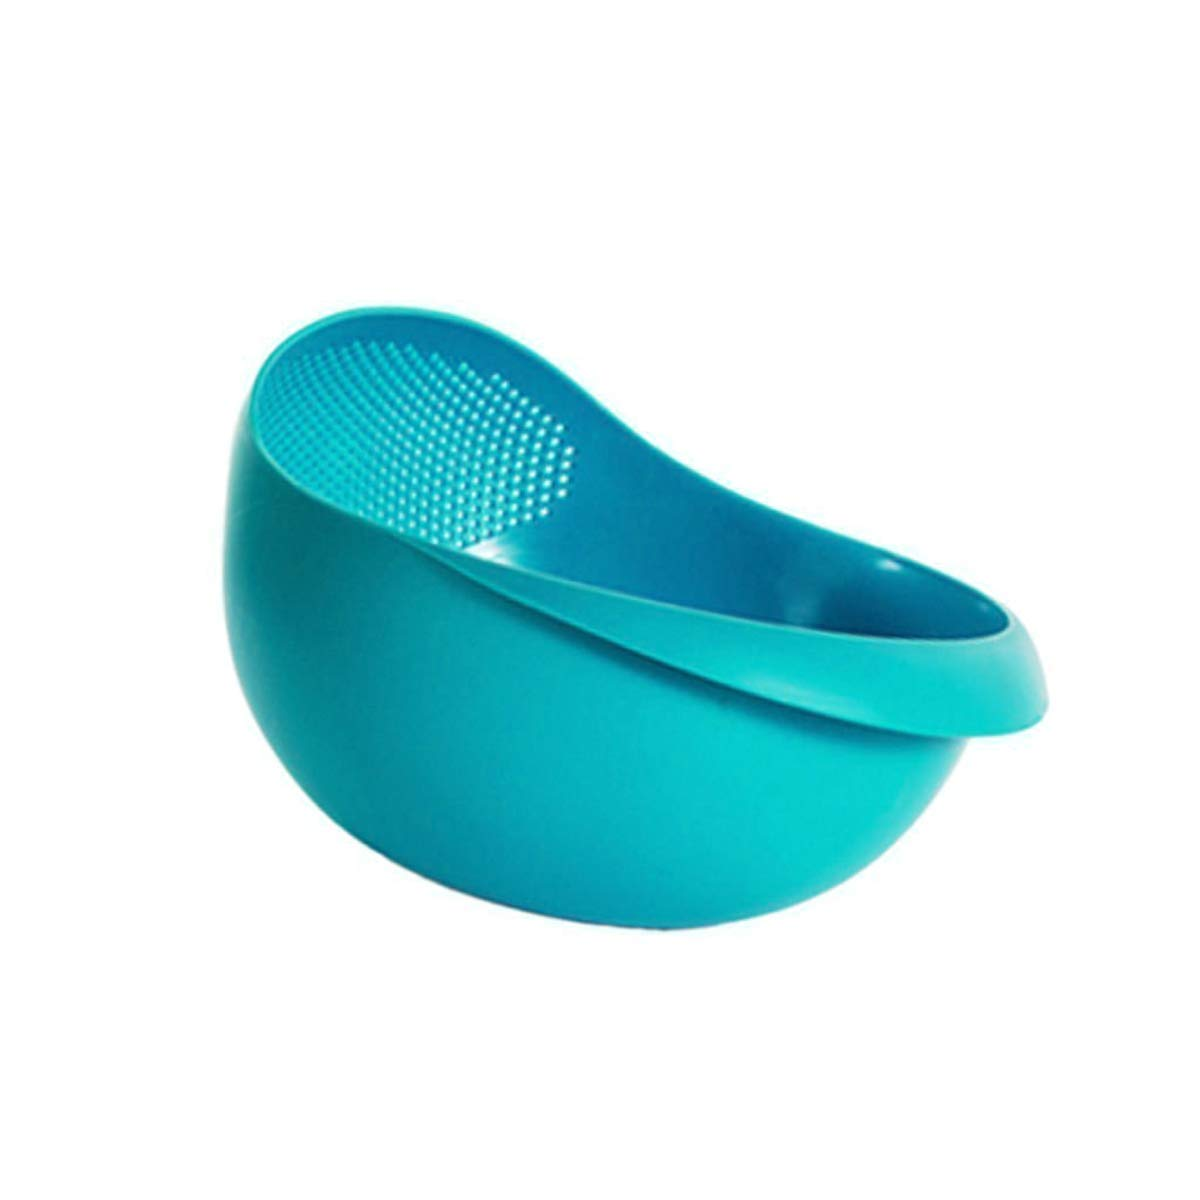 Gambit Rice, Fruits, Vegetable, Noodles, Pasta - Washing Bowl & Strainer Good Quality & Perfect Size for Storing and Straining (1pc)